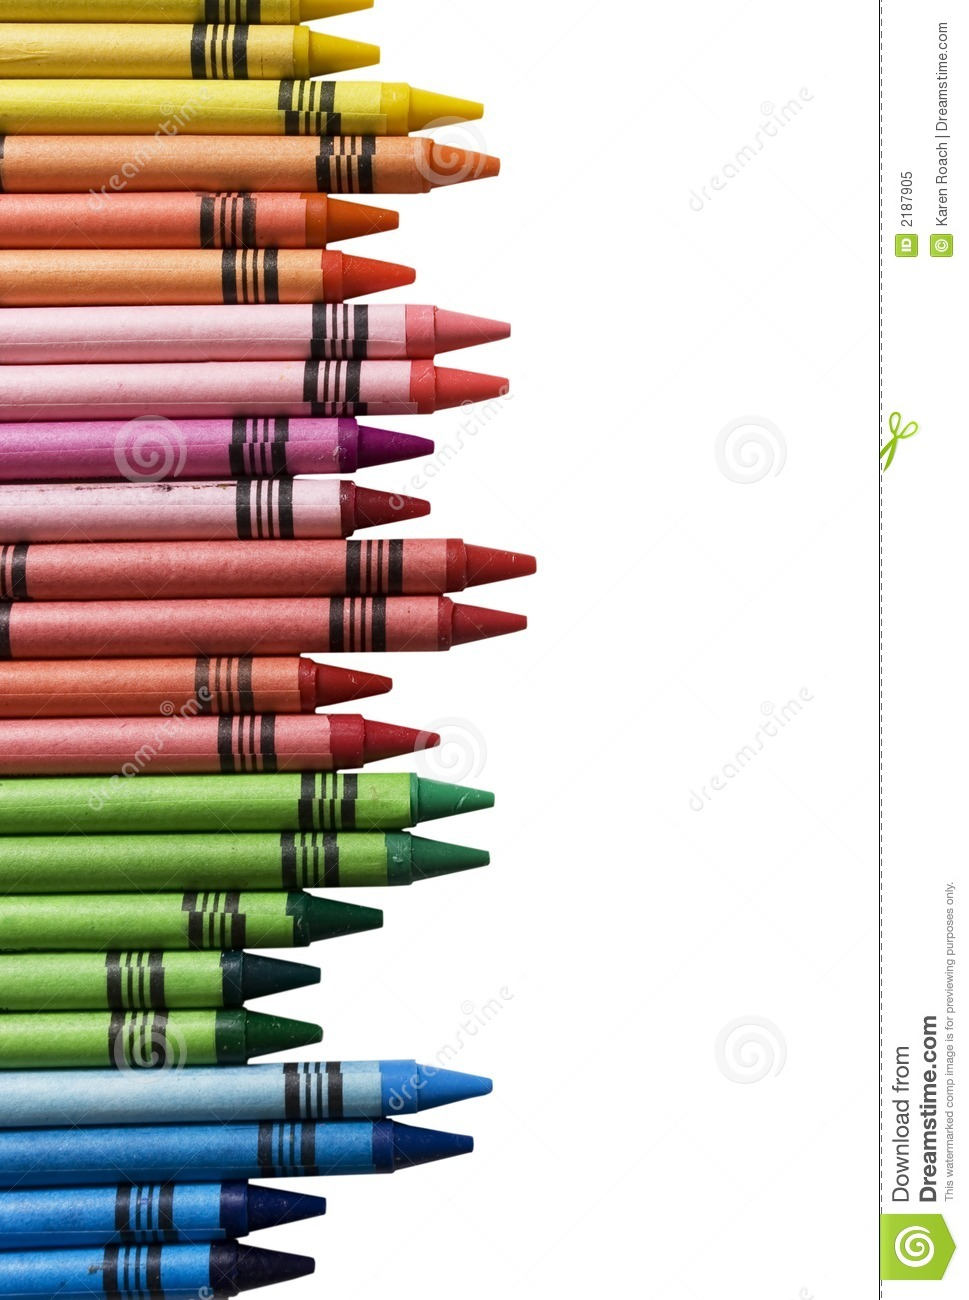 Crayons in arrange in color wheel colors on white background.